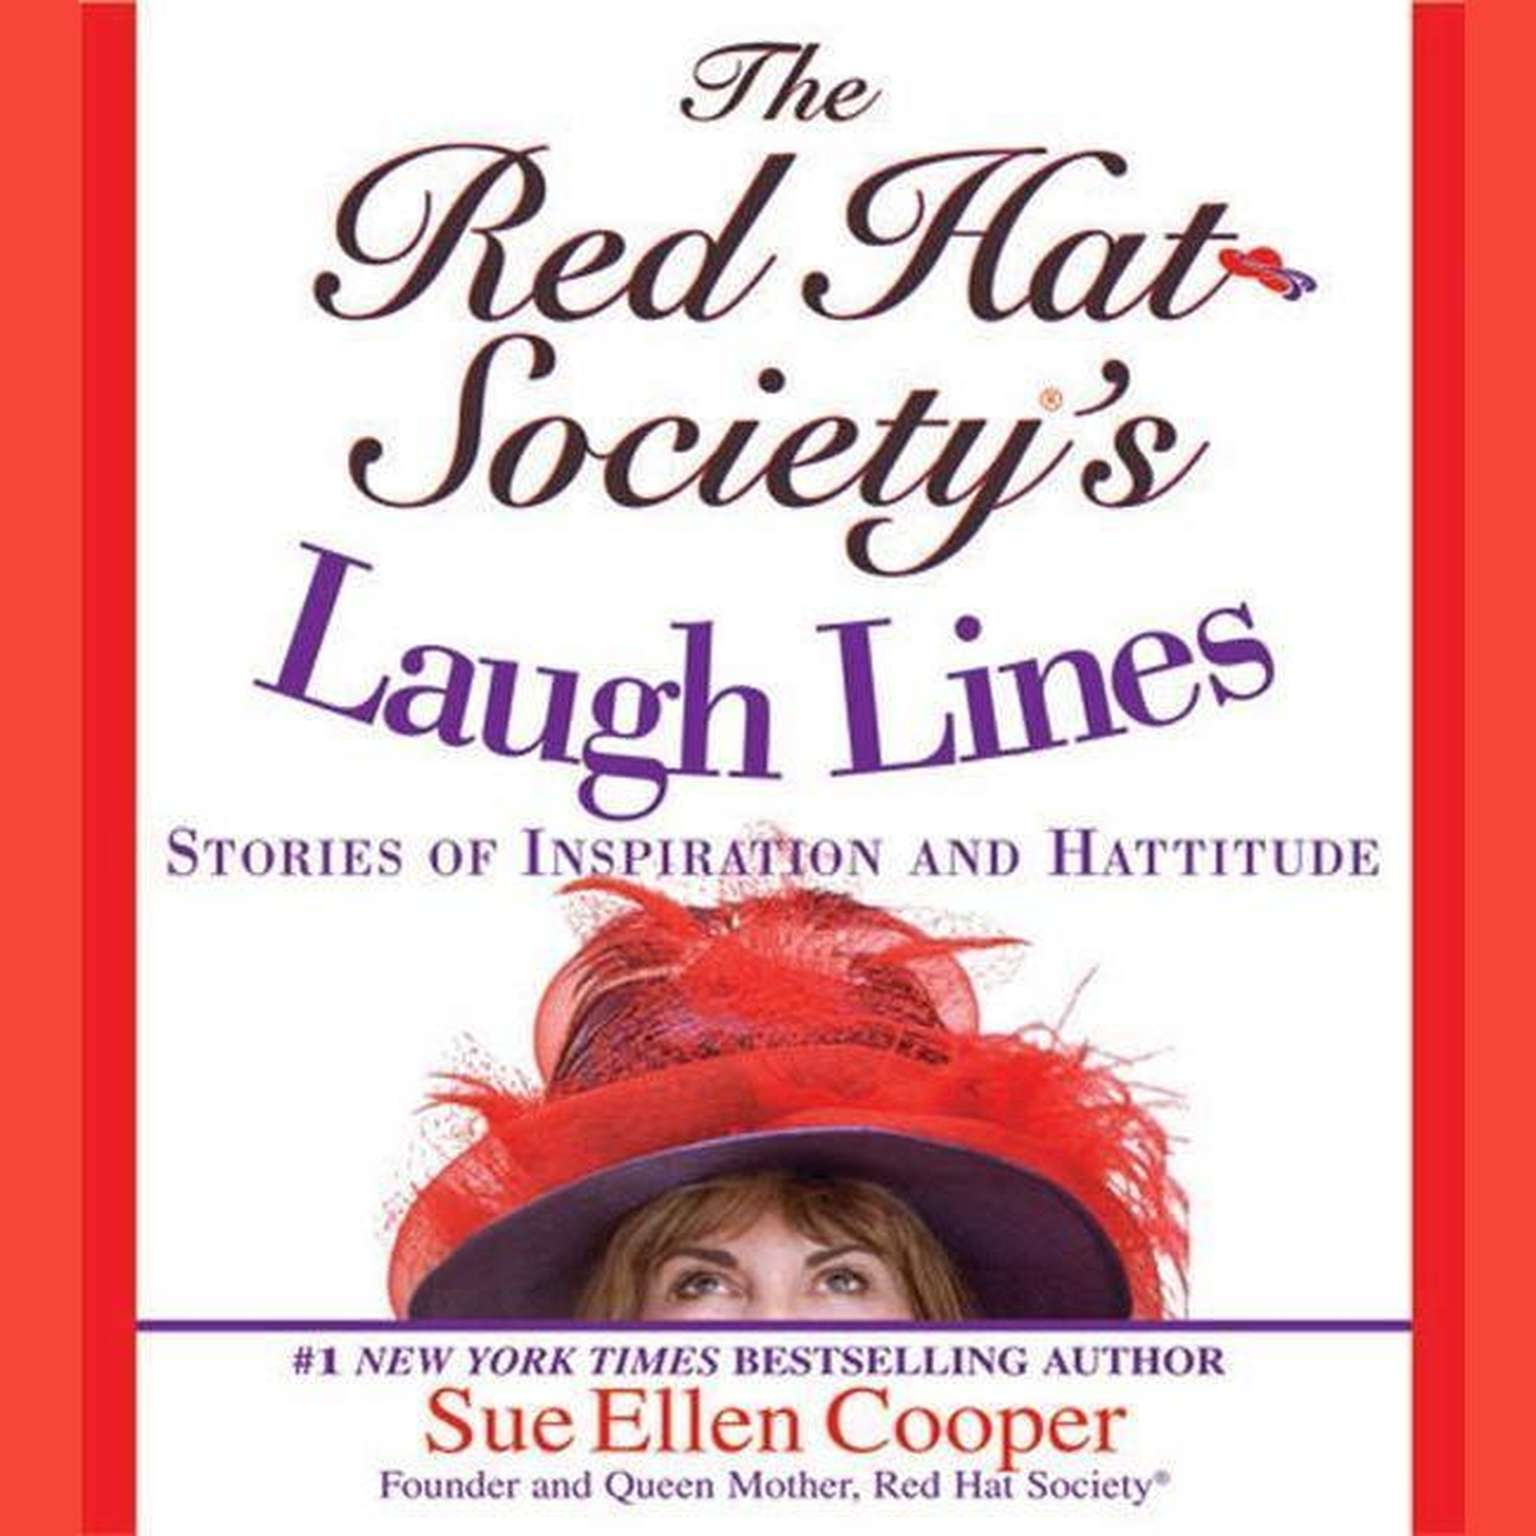 Printable The Red Hat Society's Laugh Lines: Stories of Inspiration and Hattitude Audiobook Cover Art